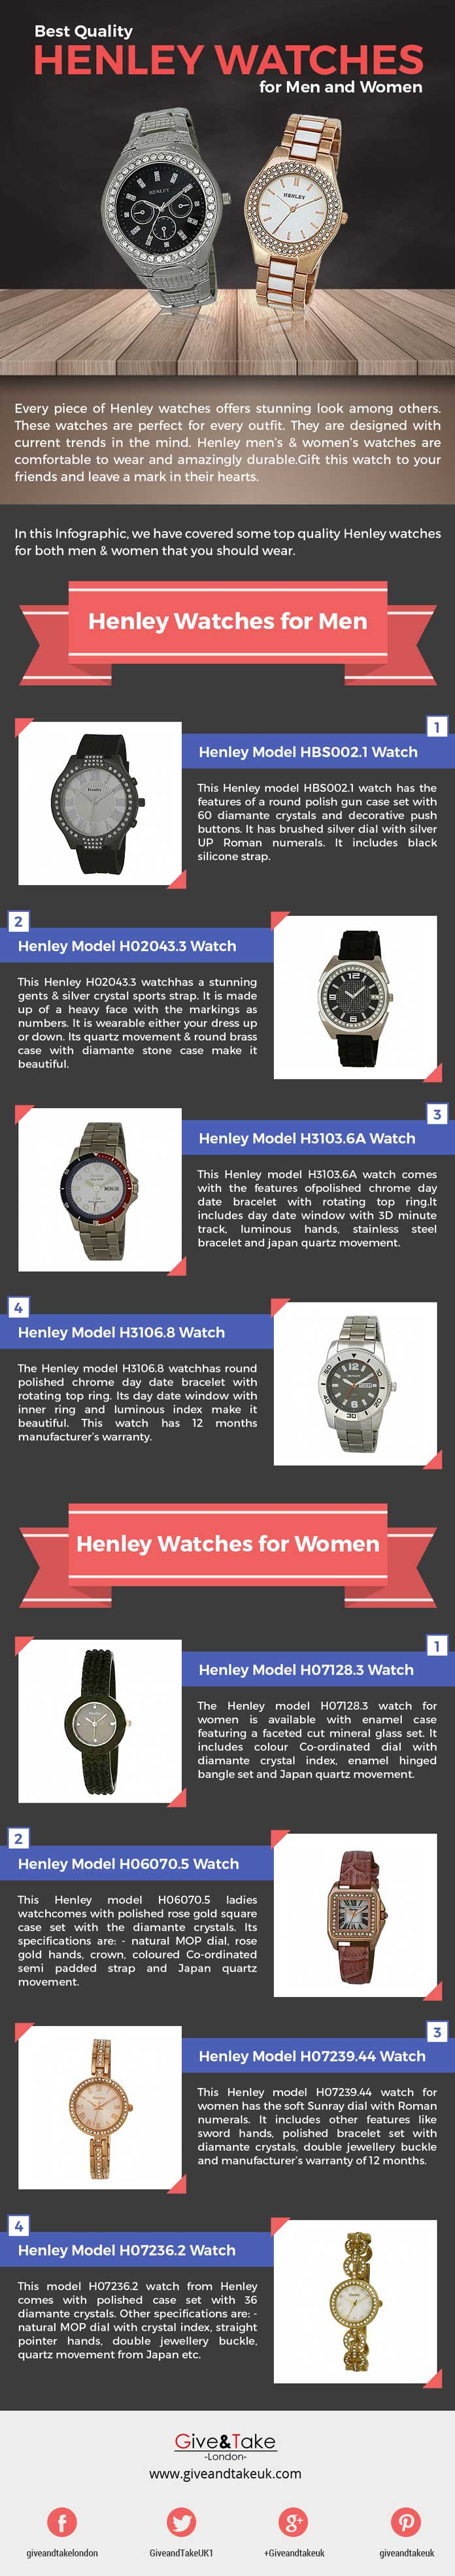 Best-Quality-Henley-Watches-for-Men-and-Women